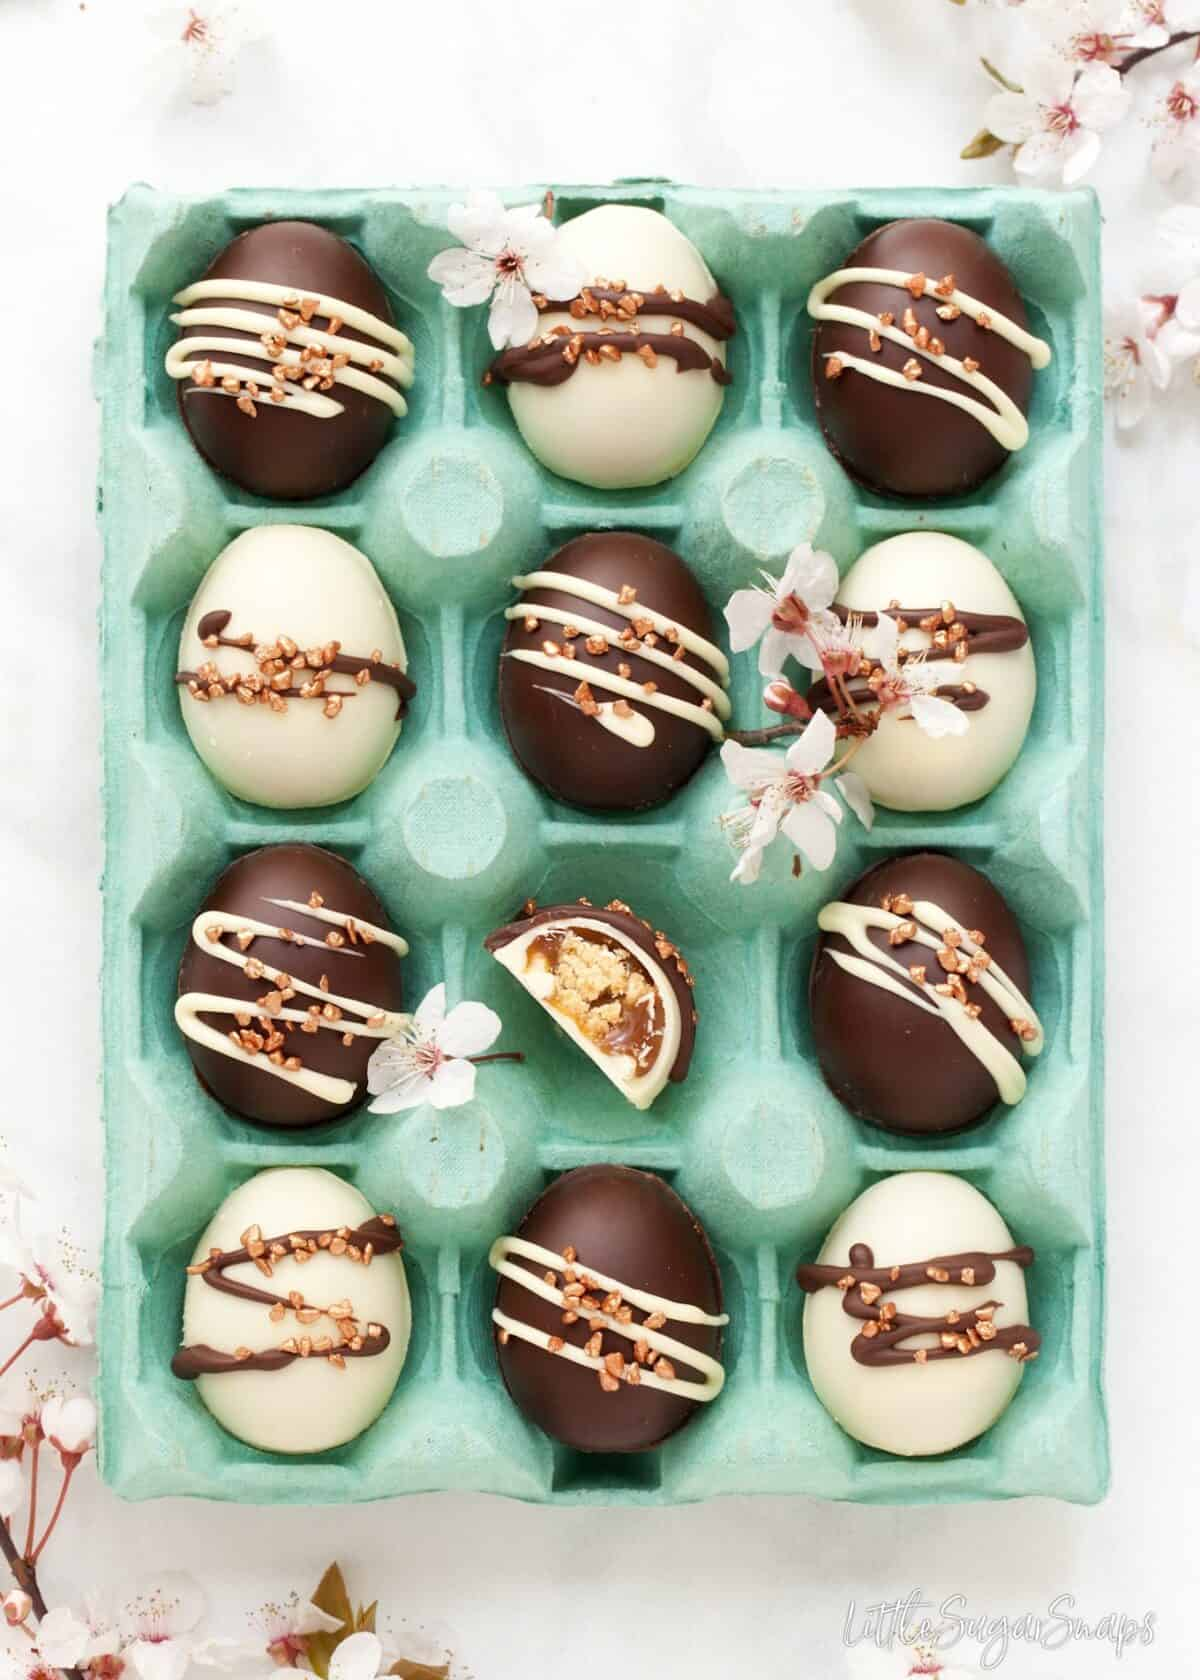 Millionaires Shortbread Caramel Easter Eggs presented in a blue egg tray.